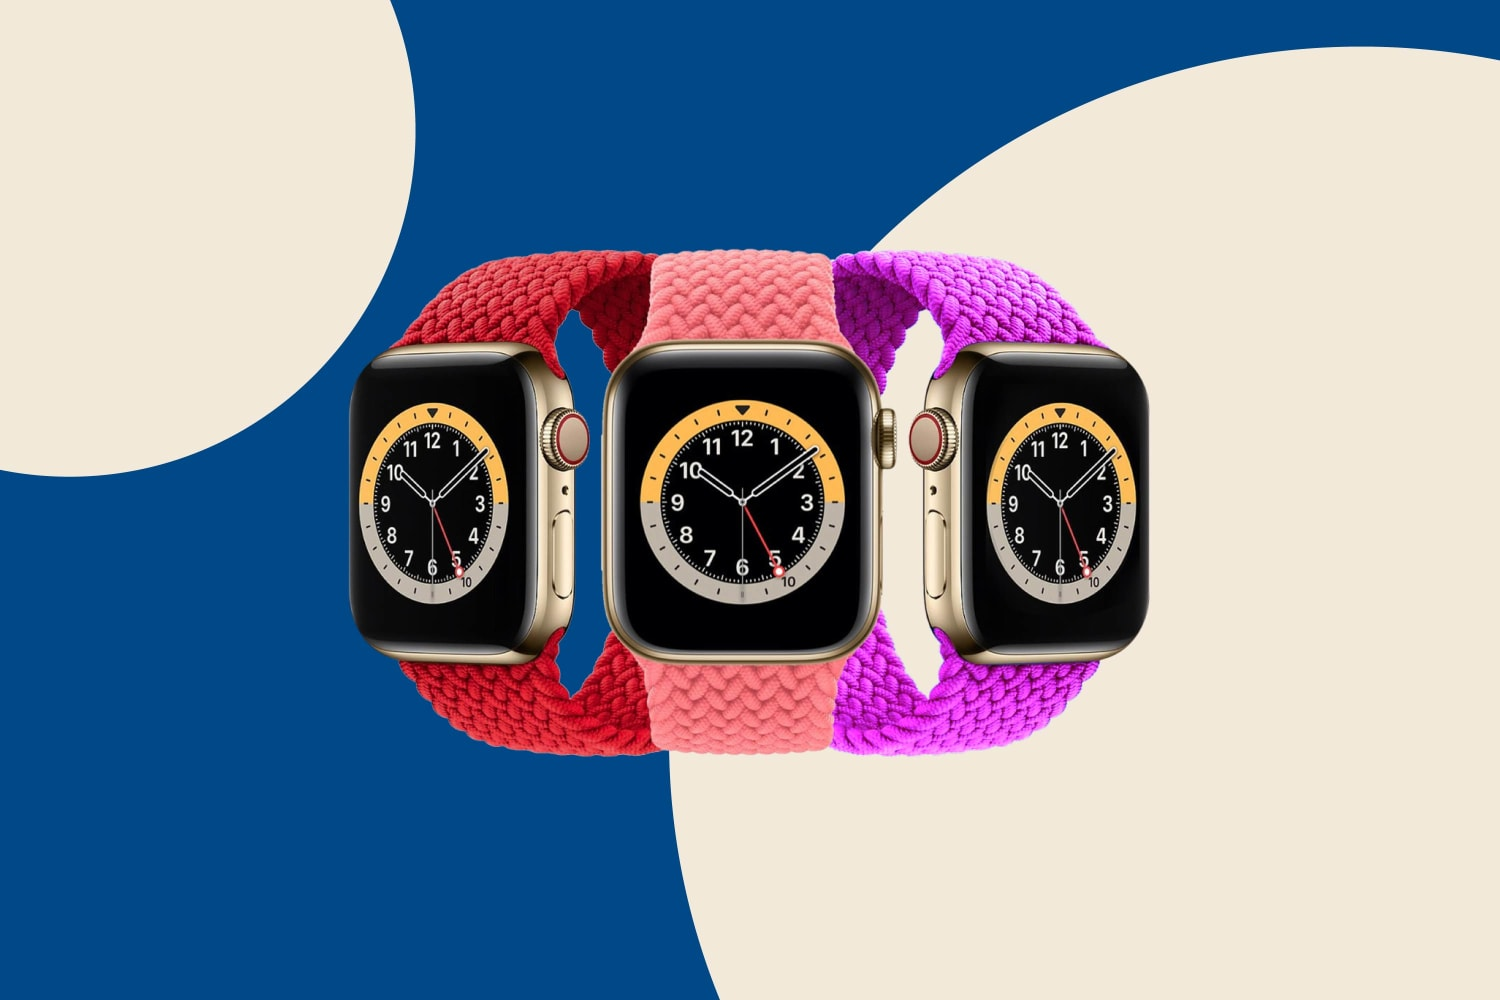 new-apple-watch-solo-and-braided-solo-loops-are-more-troublesome-than-previous-bands-20200922-1